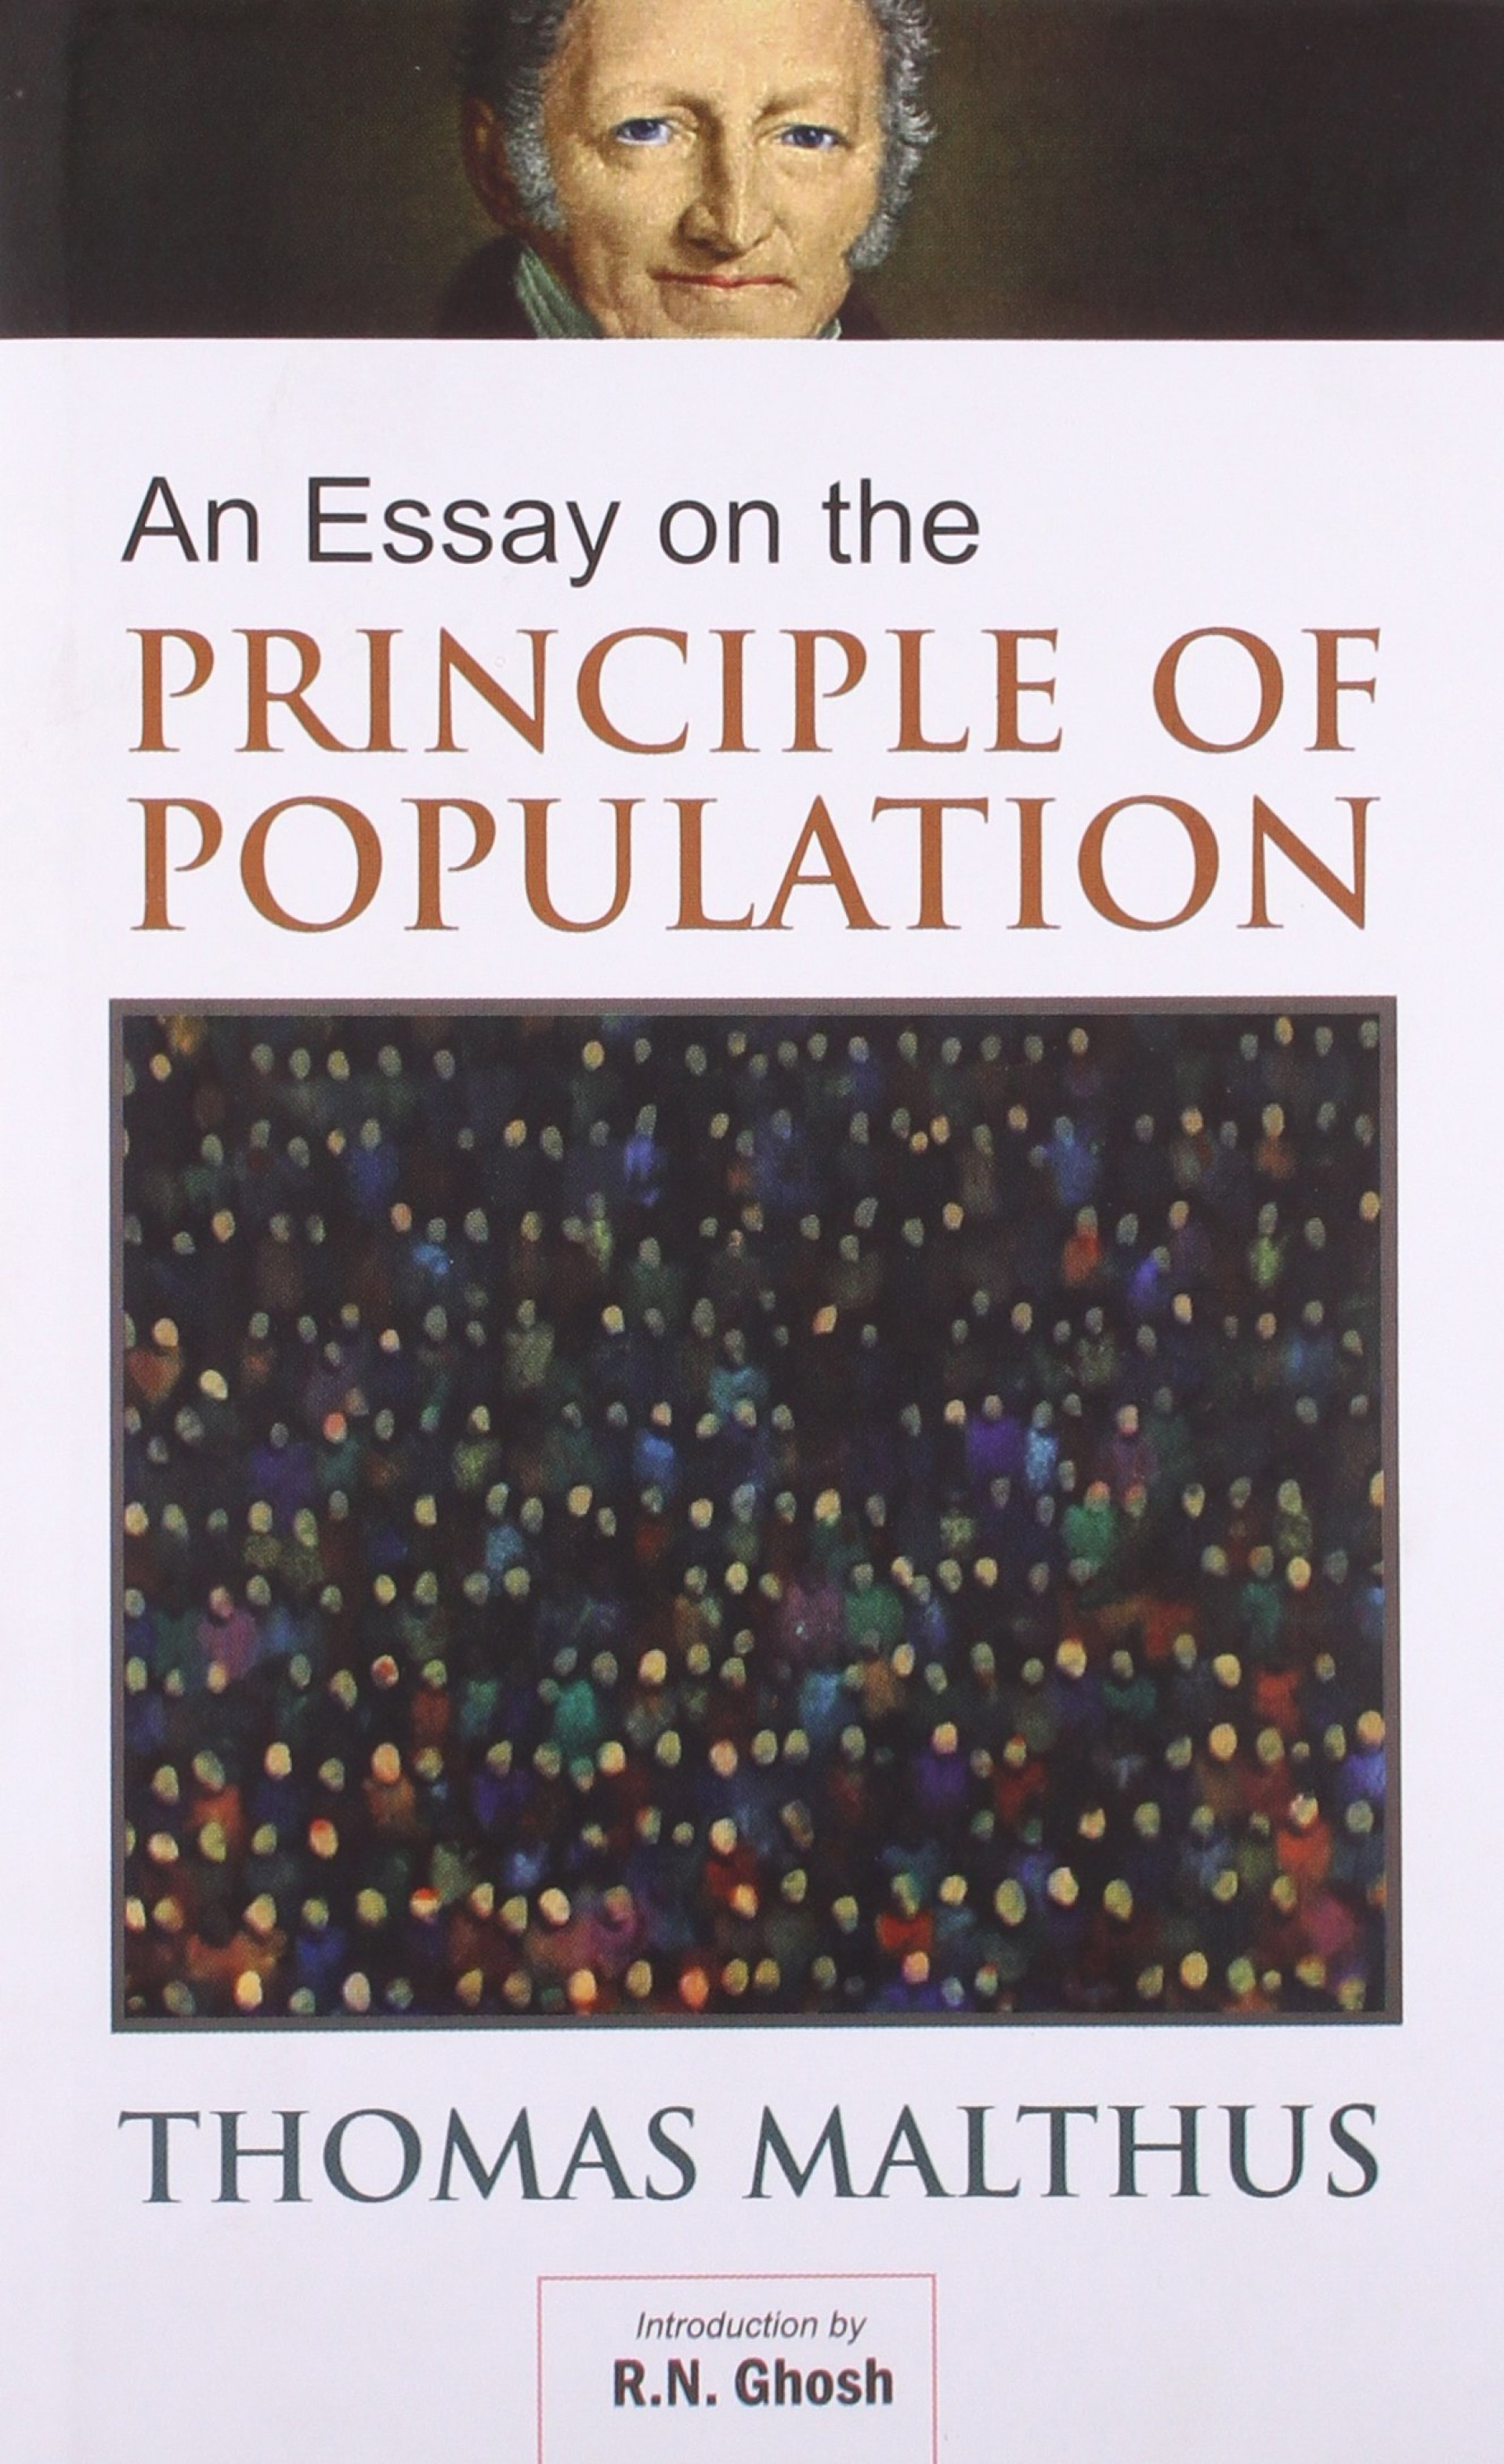 011 8162bfm1ycfl Essay Example Thomas Malthus An On The Principle Of Marvelous Population Summary Analysis Argued In His (1798) That 1920